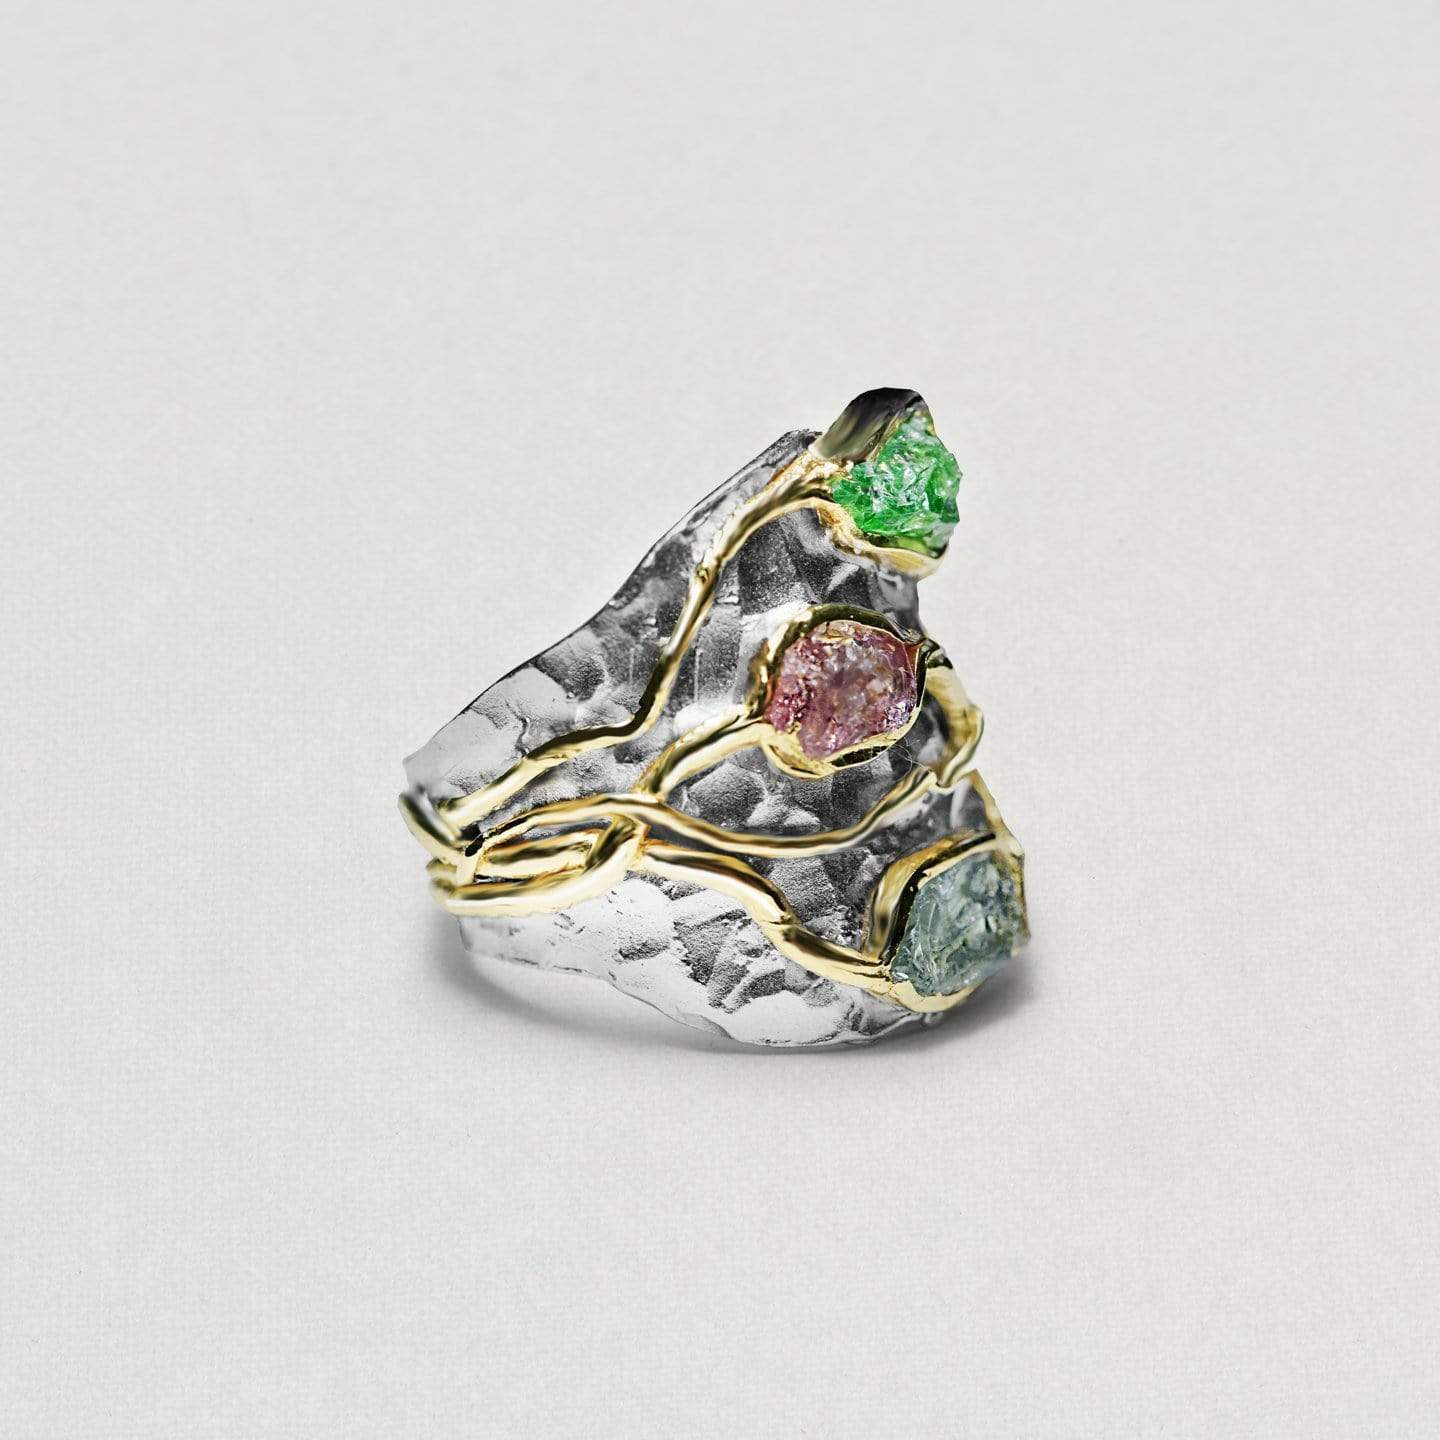 Eleris Ring, Gold, Handmade, Rhodium, Sapphire, silver, spo-disabled, StoneColor:MixedColor, Style:Everyday, Tsavorite, Type:StoneCandyWired Ring